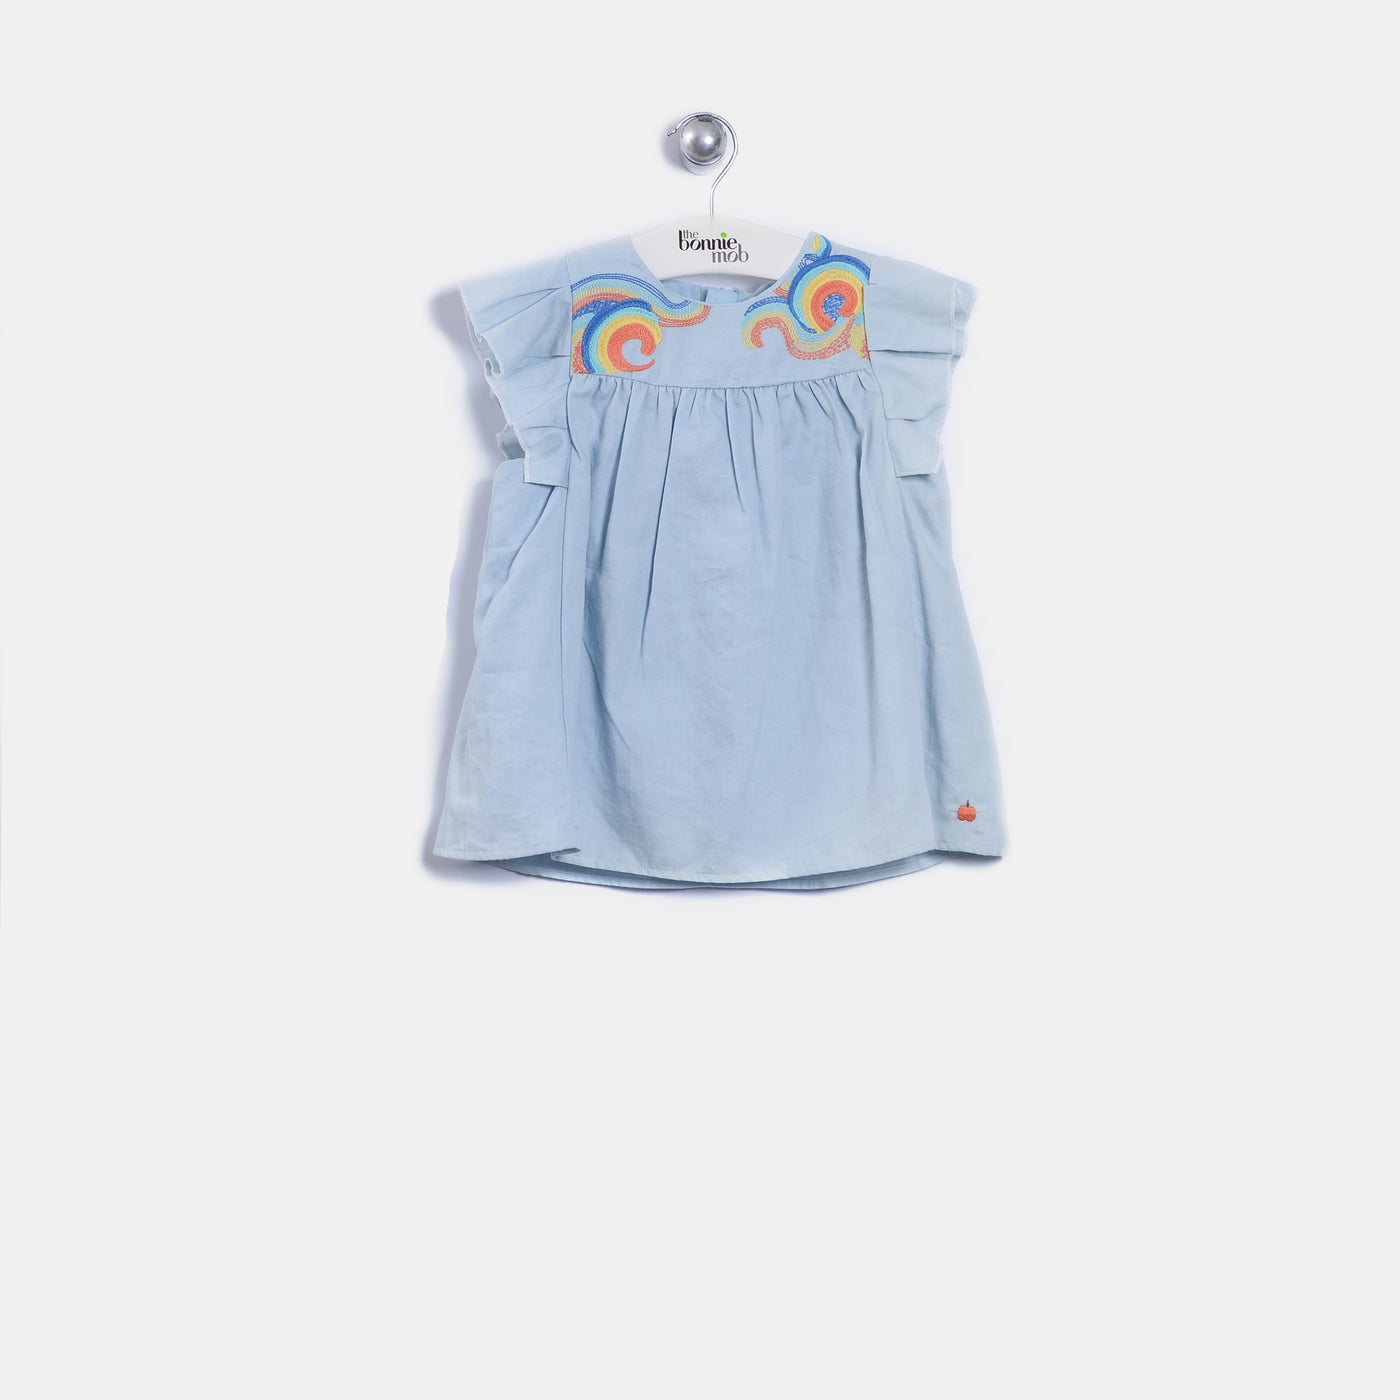 L-MAYA - Baby - Top - VINTAGE DENIM